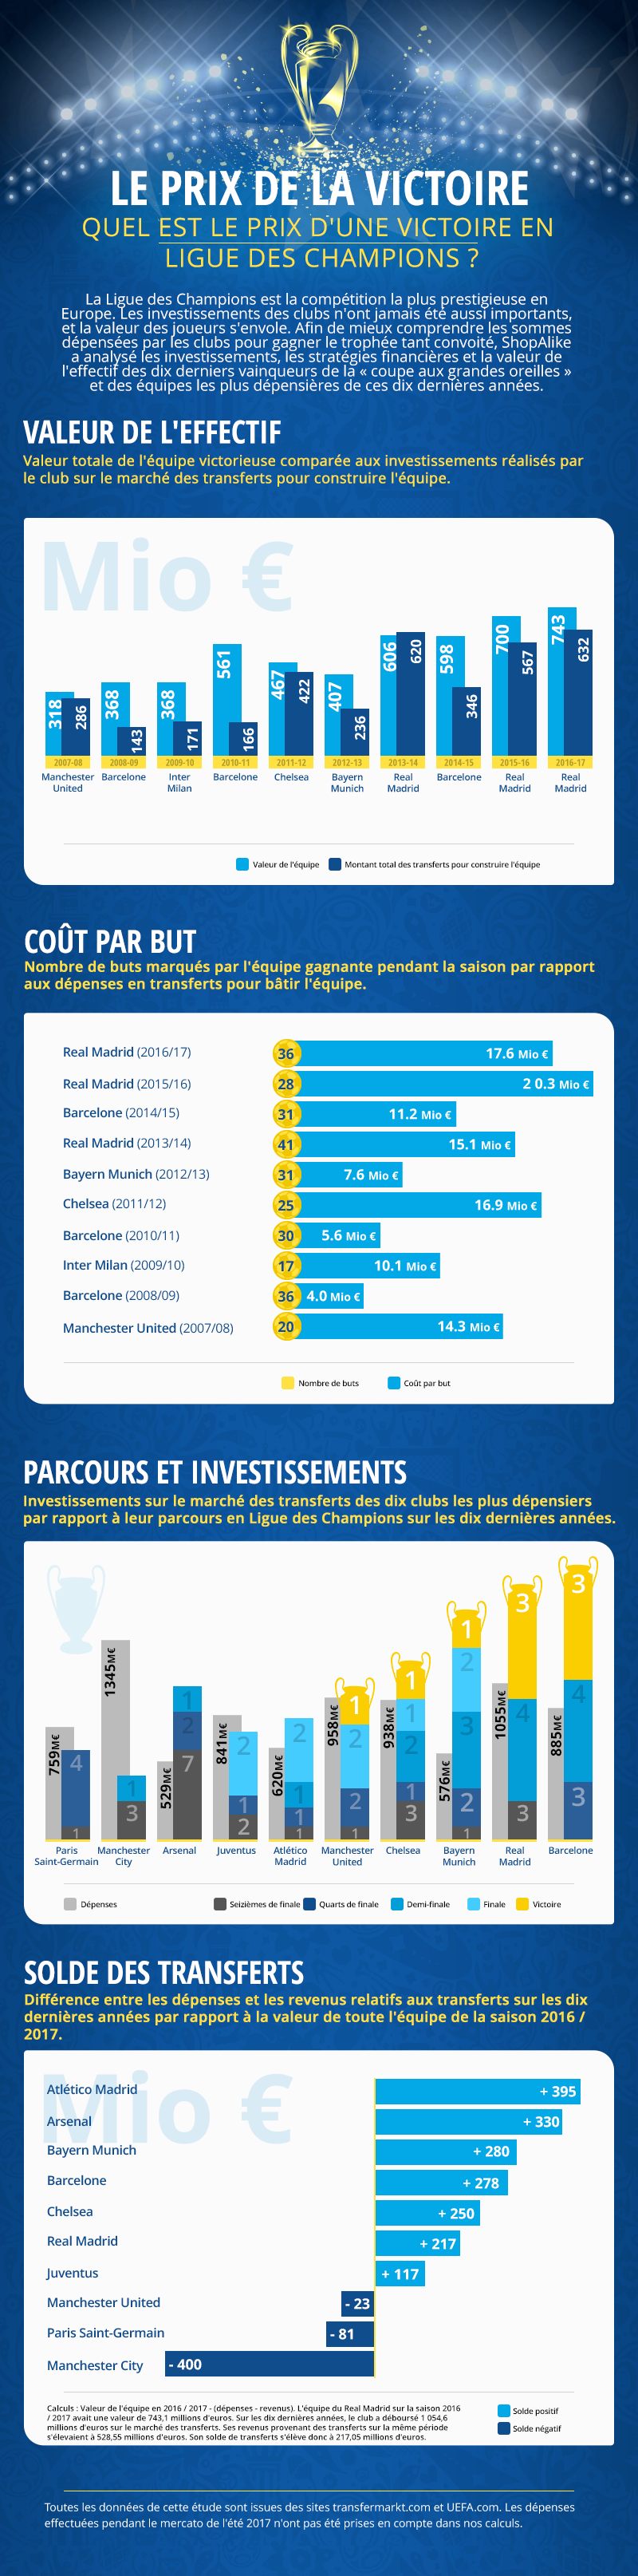 infographie-ligue-champ